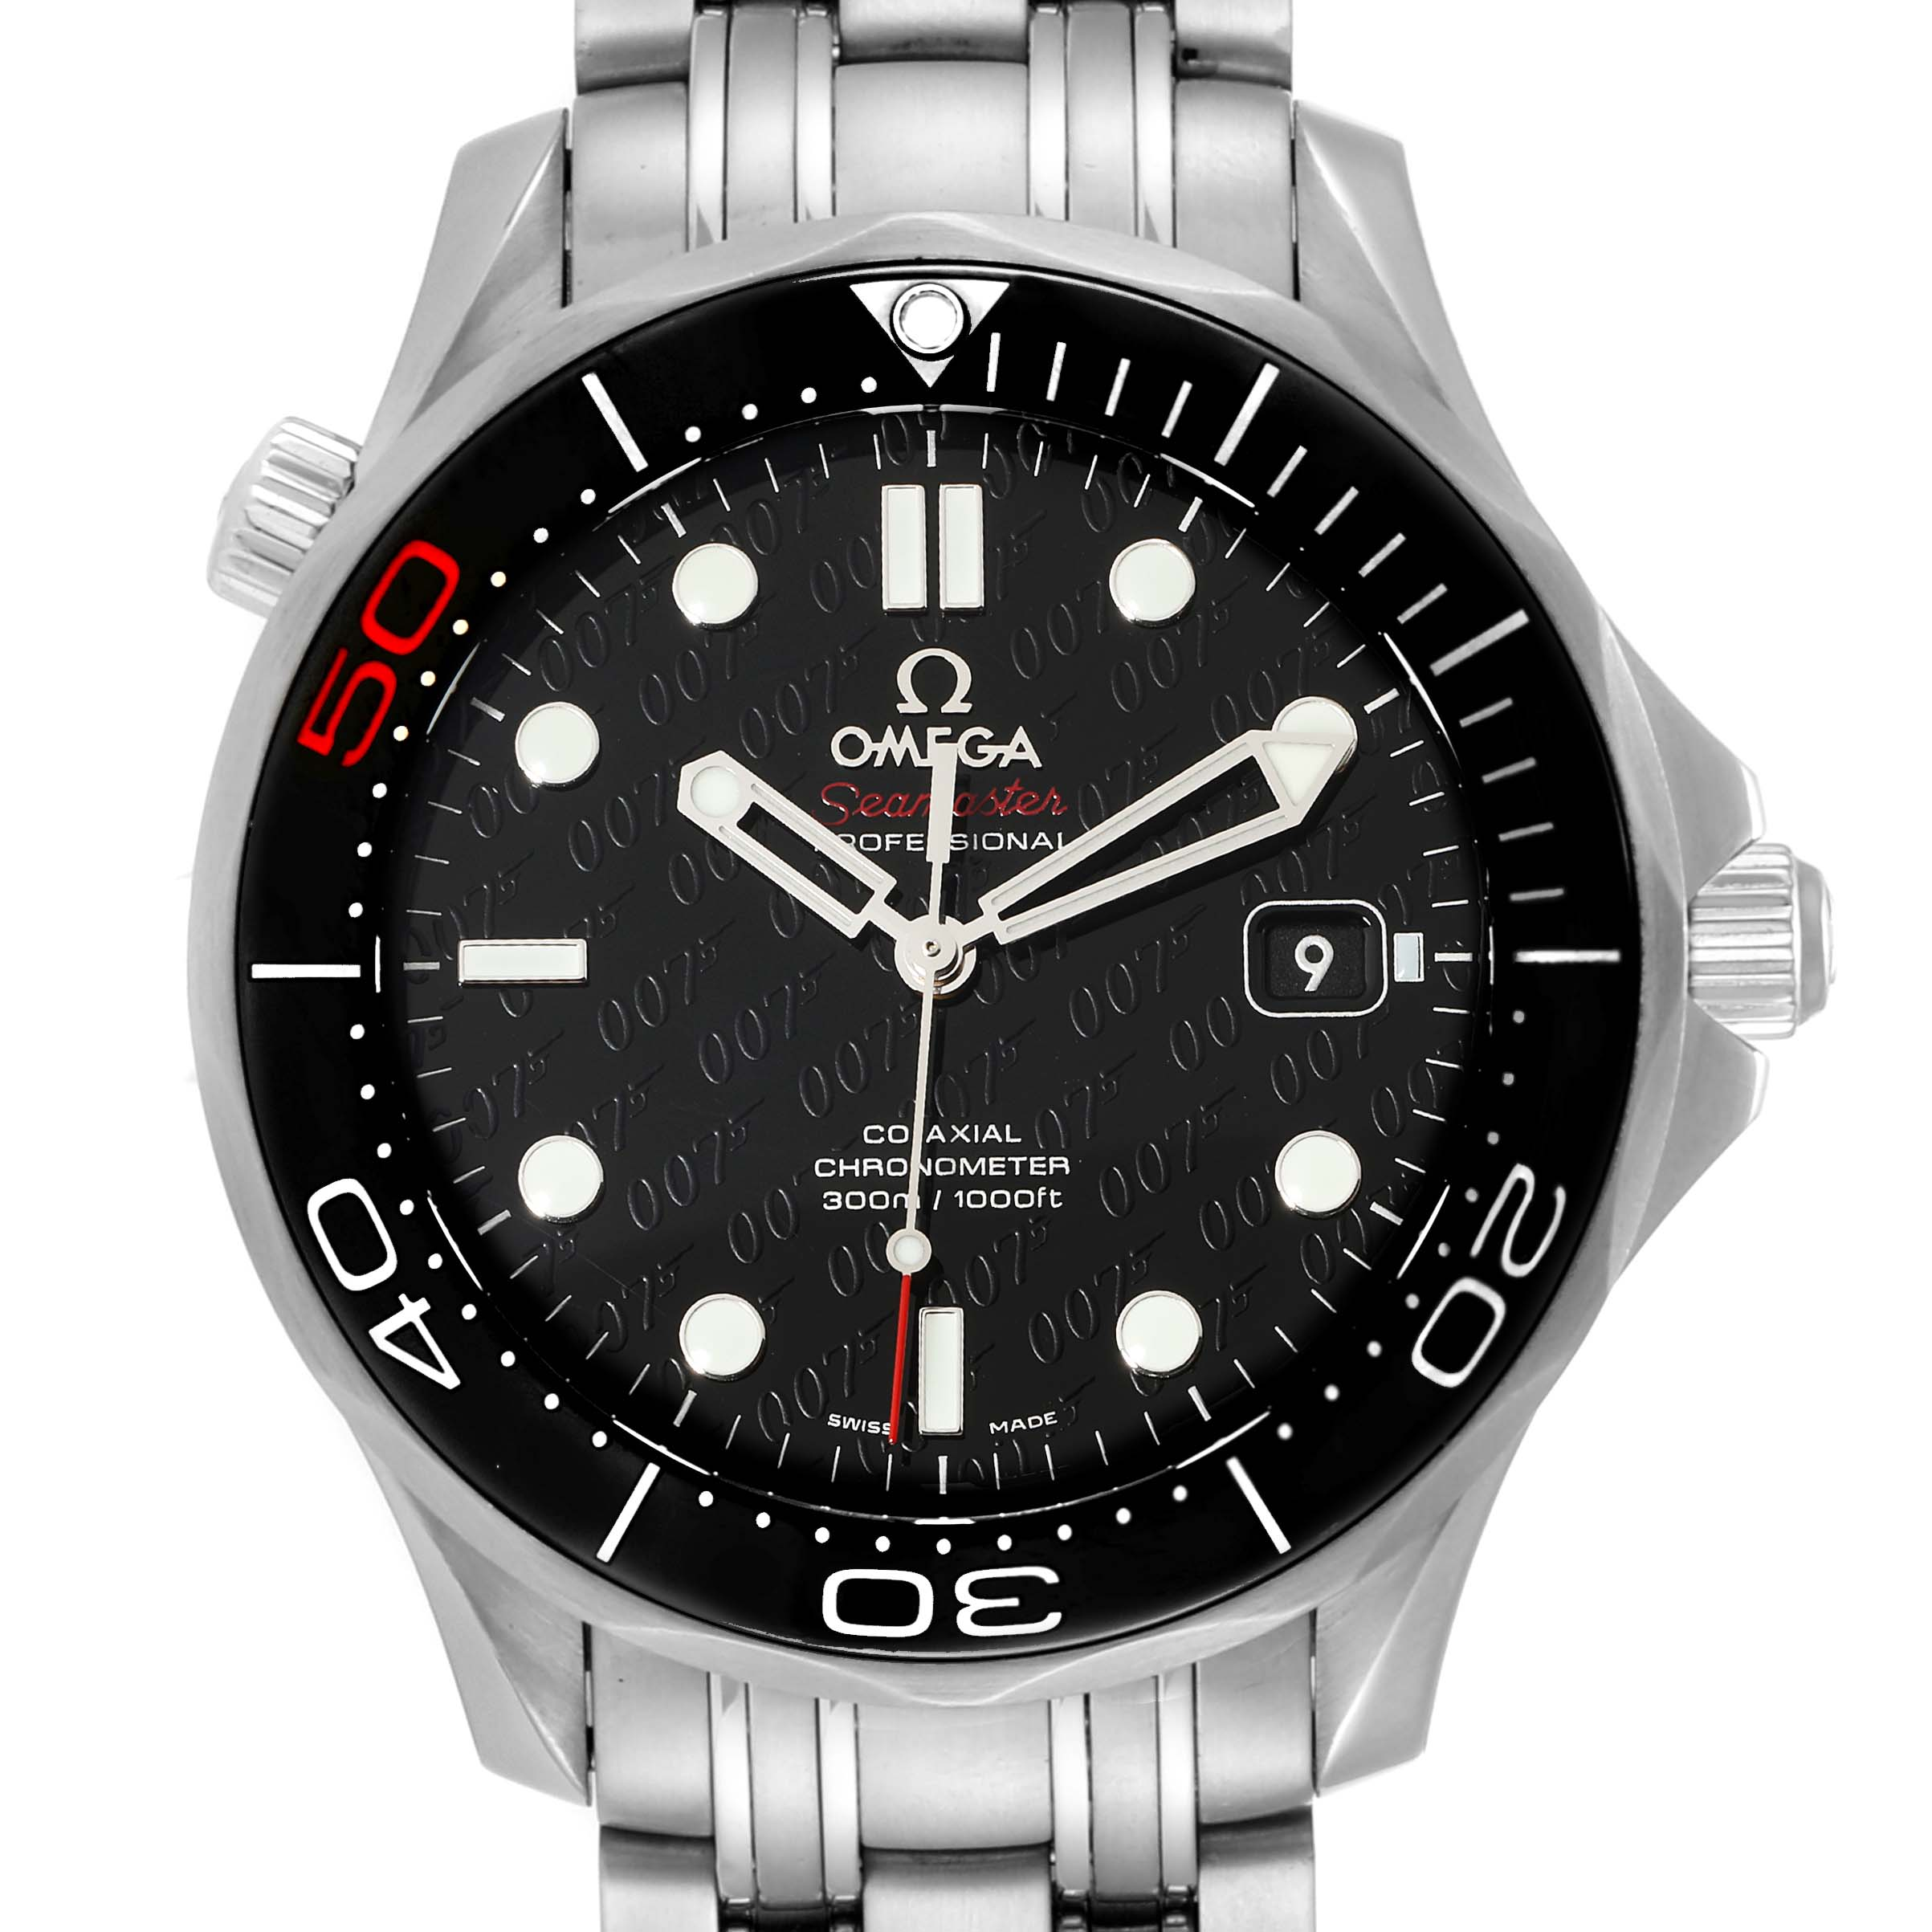 Photo of Omega Seamaster Limited Edition Bond 007 Watch 212.30.41.20.01.005